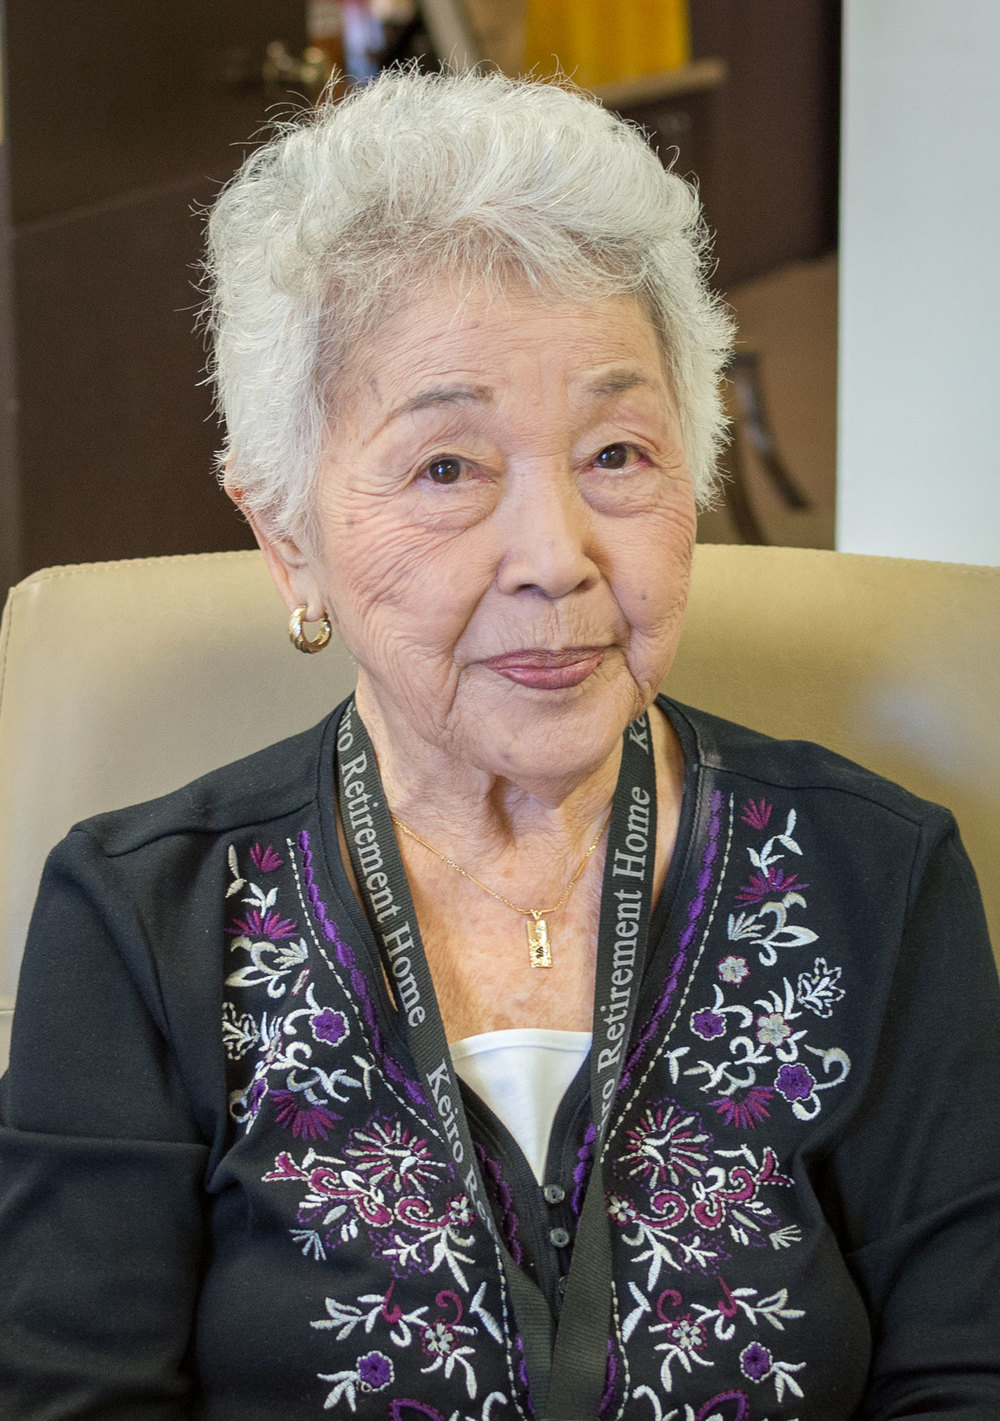 Sachi Kaneshiro - born January 1, 1920